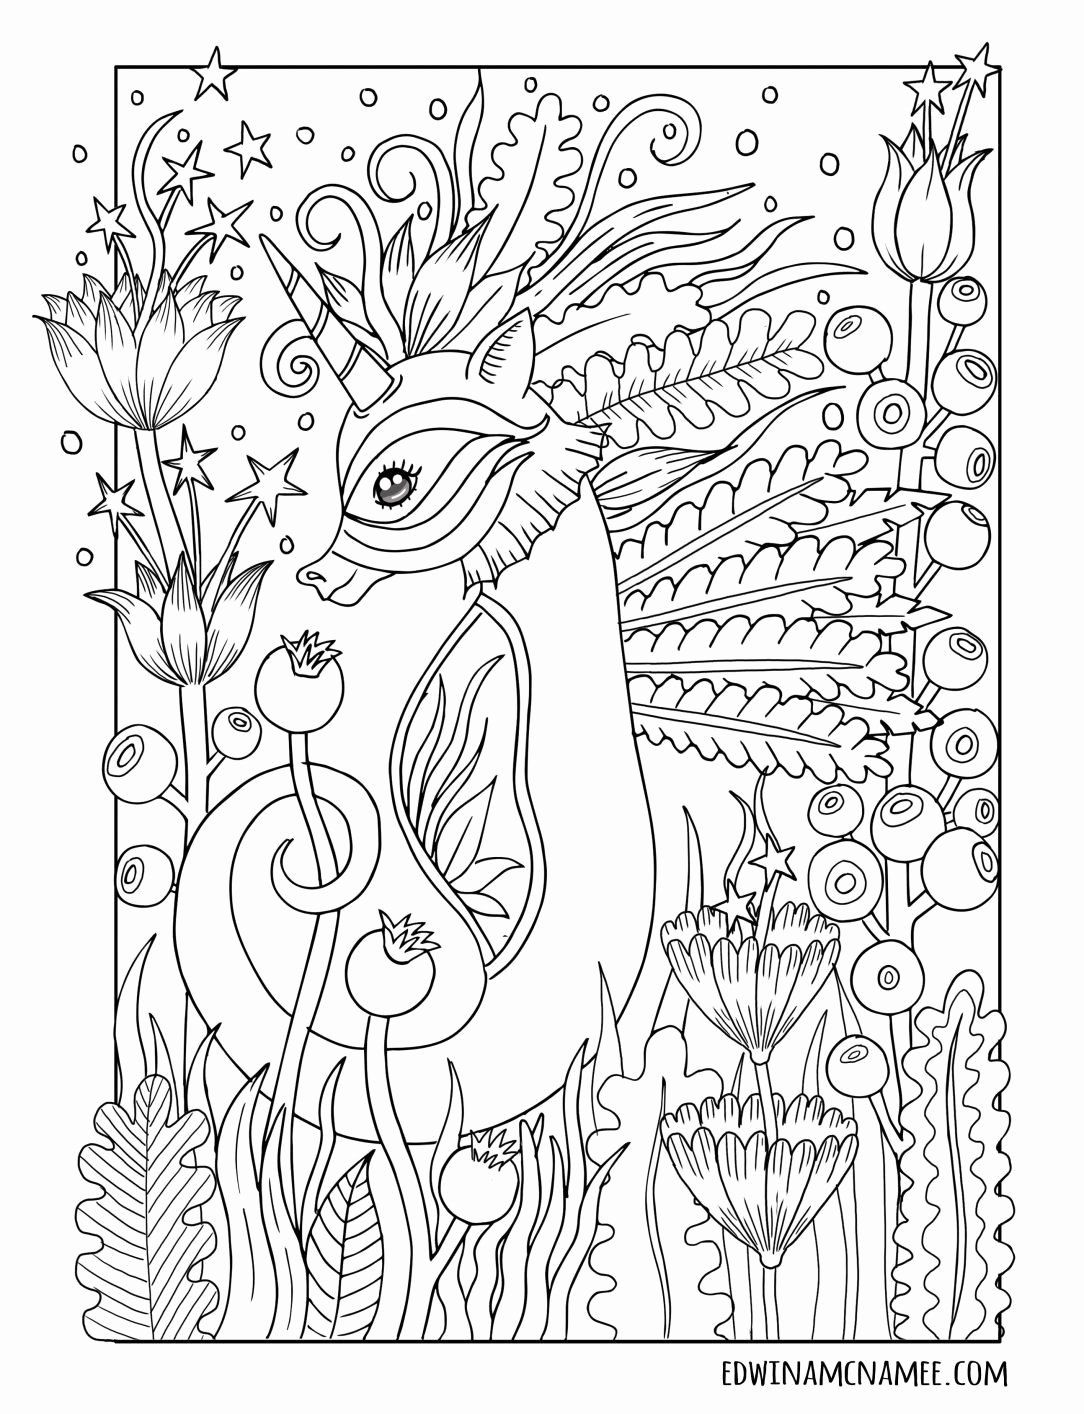 Art for Adults Coloring Book Walmart Fresh Unique Coloring